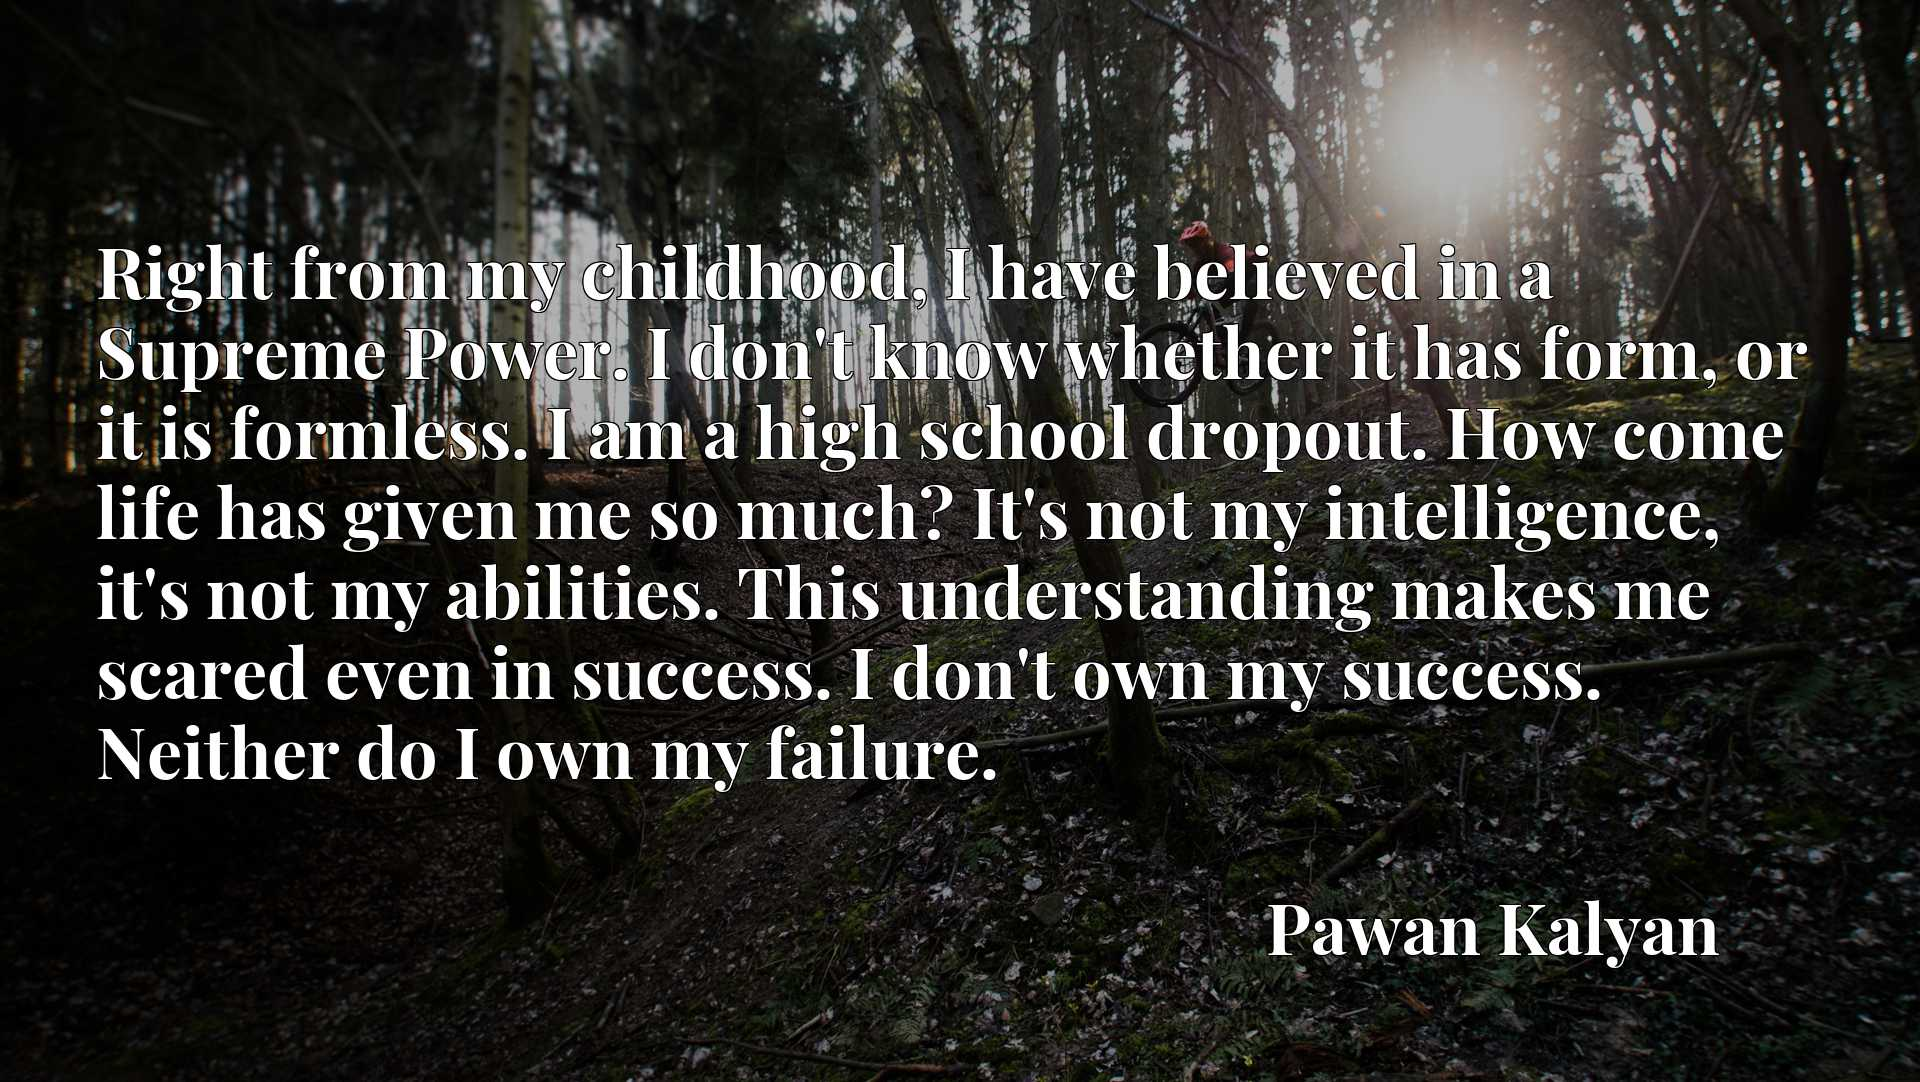 Right from my childhood, I have believed in a Supreme Power. I don't know whether it has form, or it is formless. I am a high school dropout. How come life has given me so much? It's not my intelligence, it's not my abilities. This understanding makes me scared even in success. I don't own my success. Neither do I own my failure.